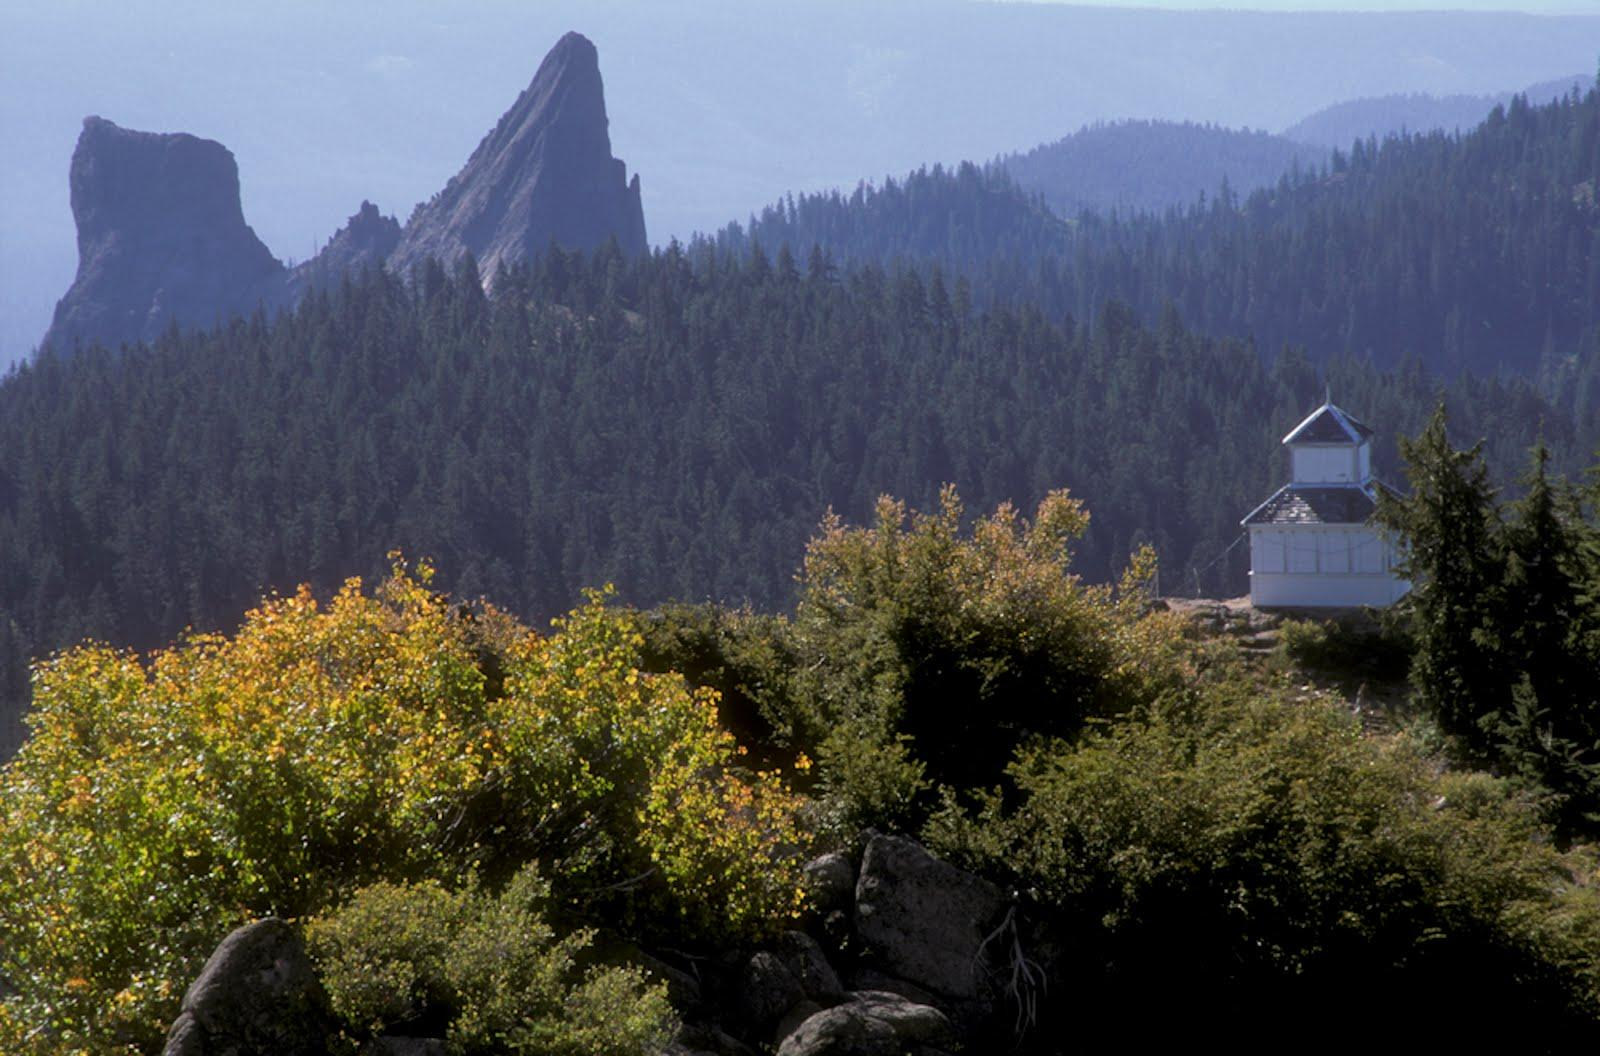 Hershberger Lookout & Rabbit Ears on the Rogue River Siskiyou National Forest